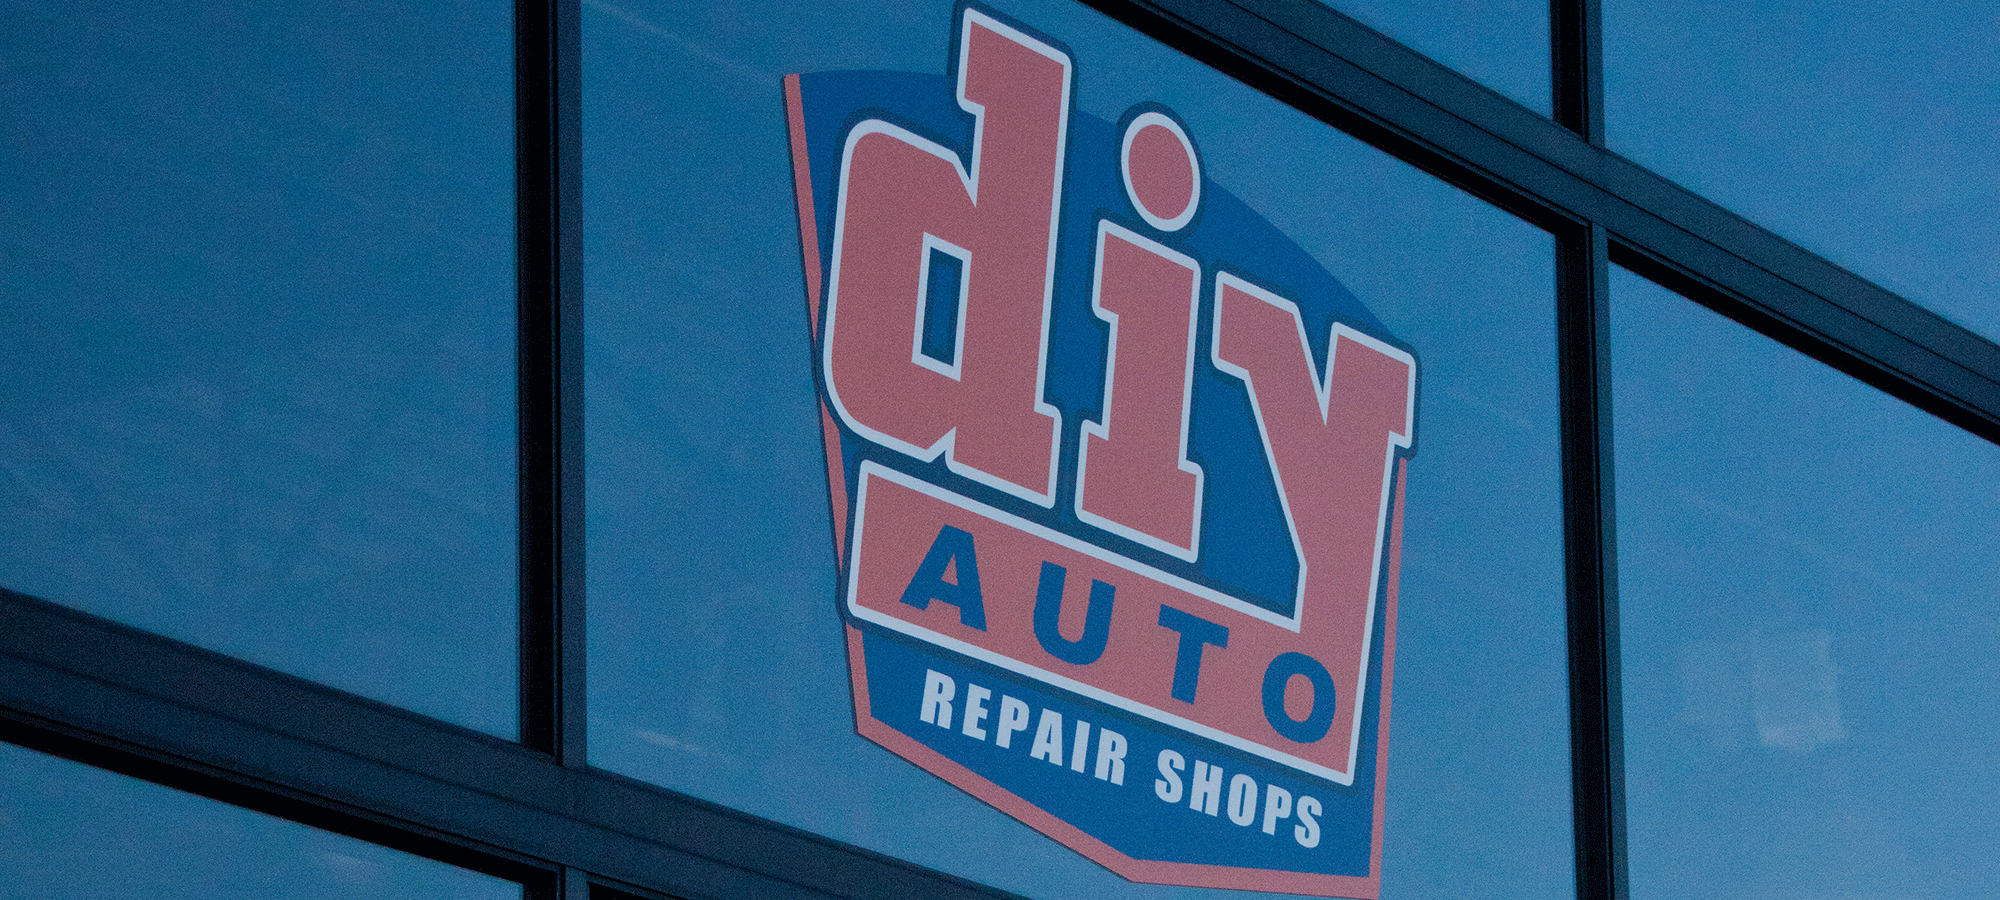 Auto repair shops near me and reviews - Save Even More Money